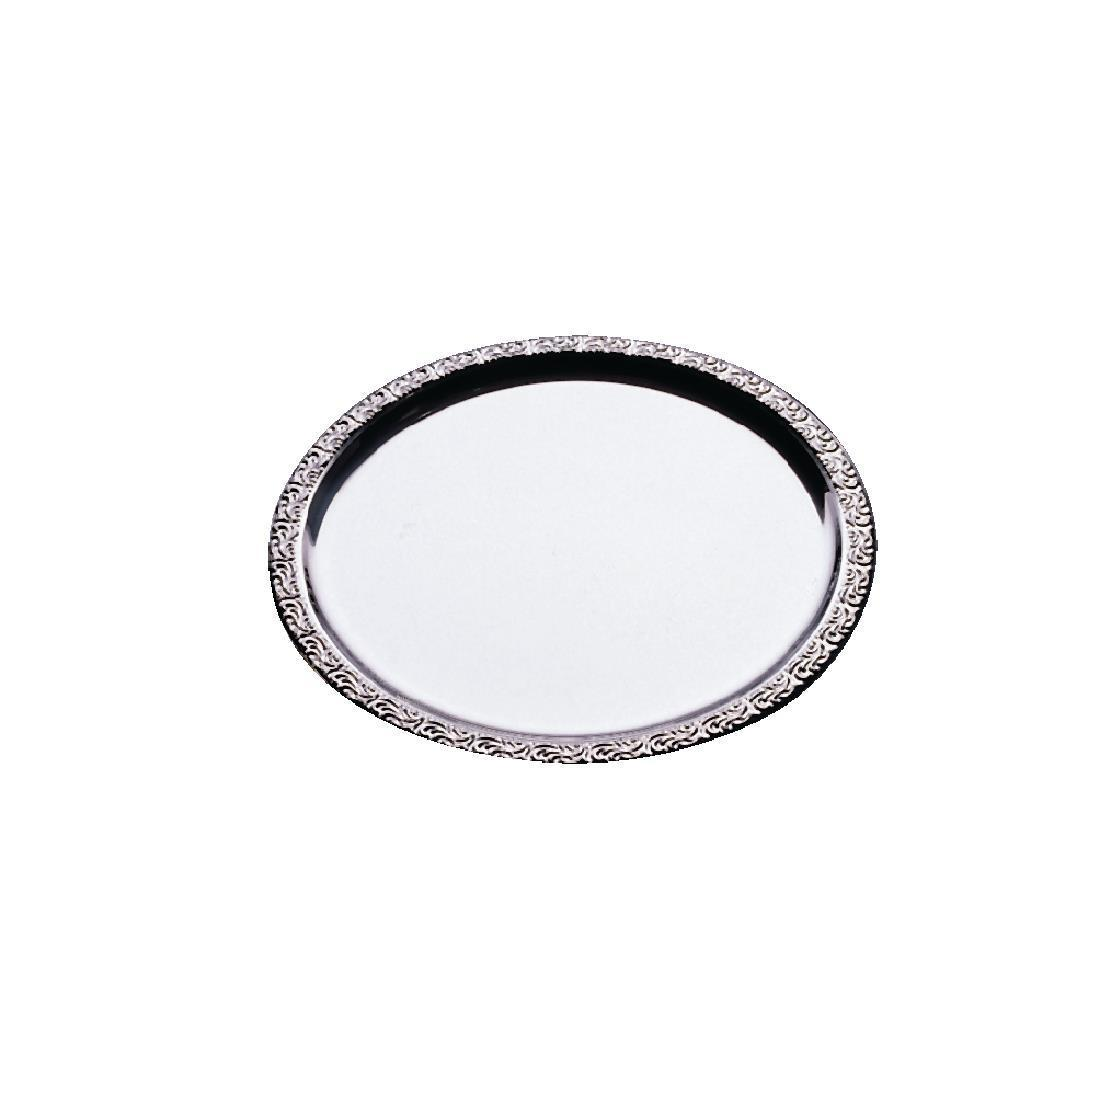 APS Stainless Steel Round Service Tray 310mm - Each - P002